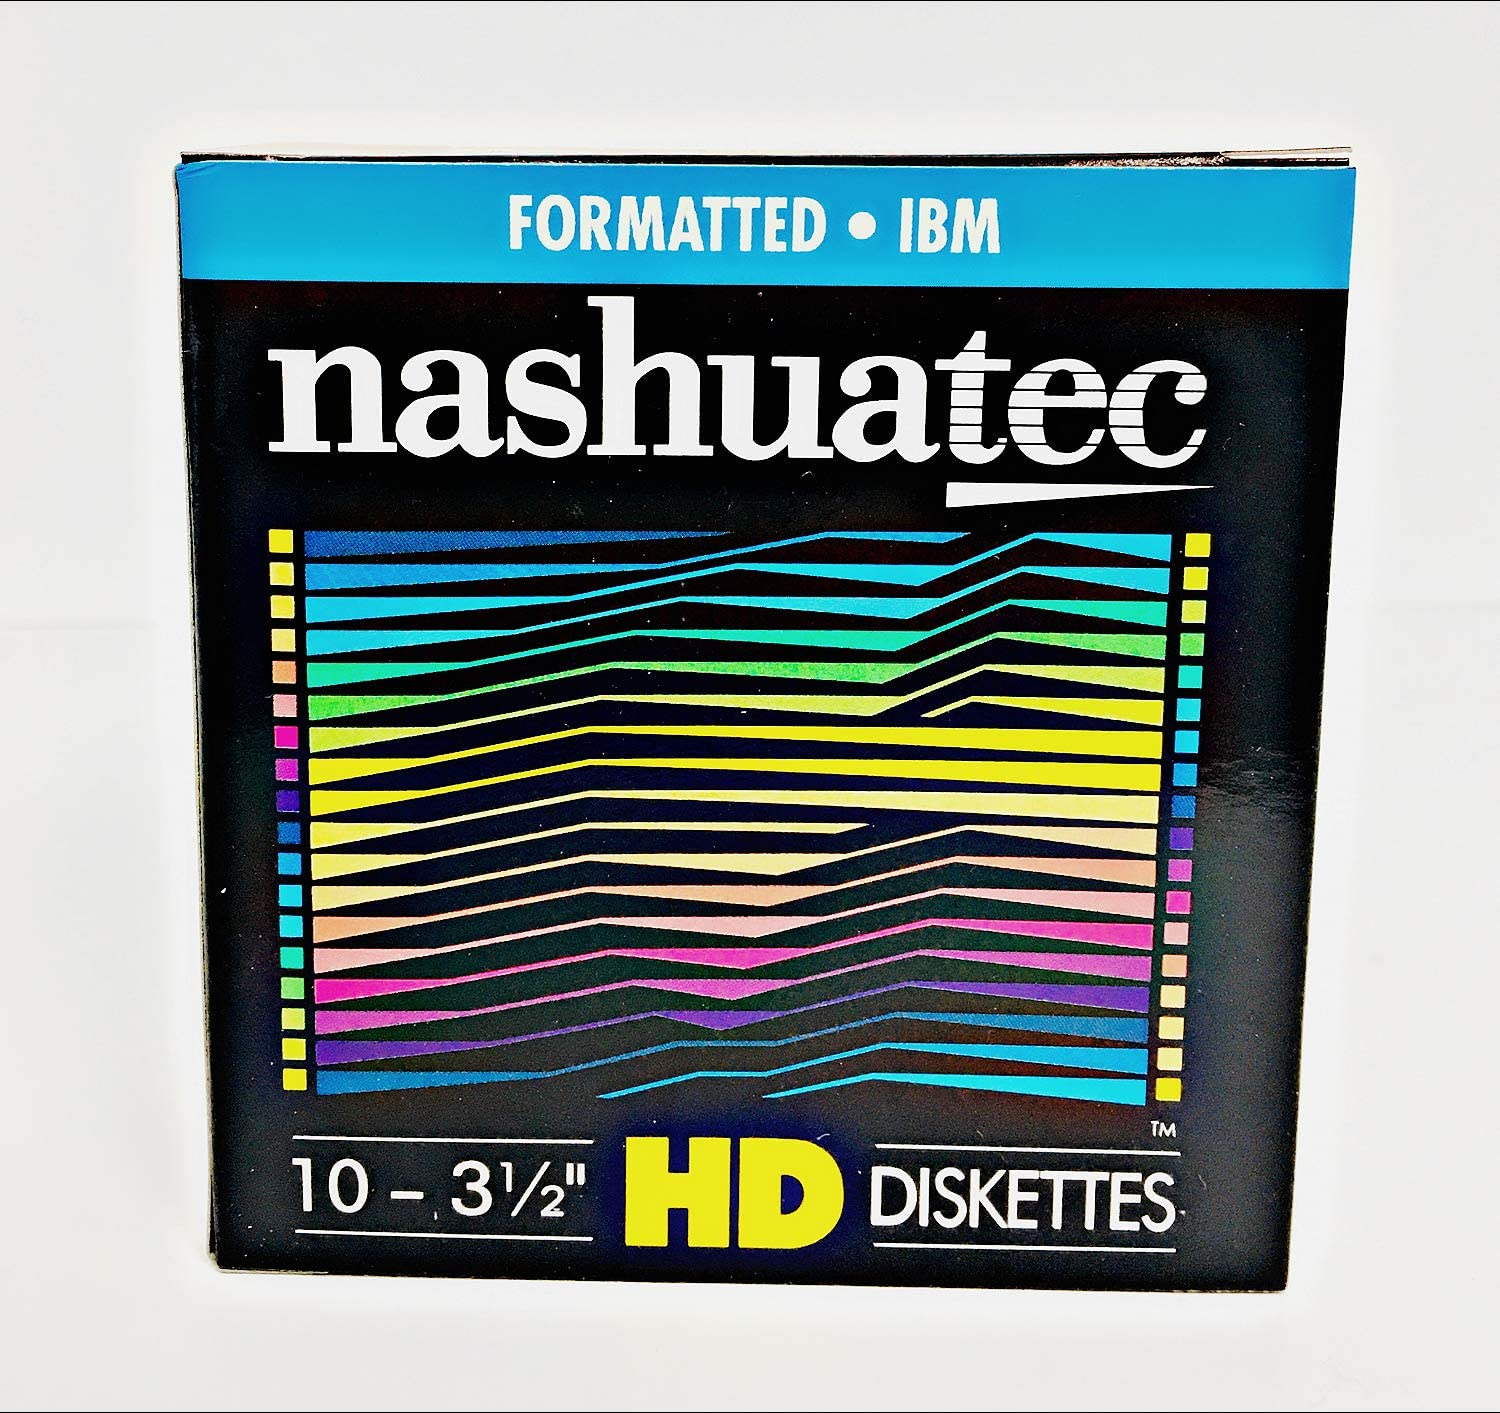 New Nashuatec High Density HD 2-Sided 3.5 Diskette IBM Formatted 10 Diskettes Per Pack for storage data.